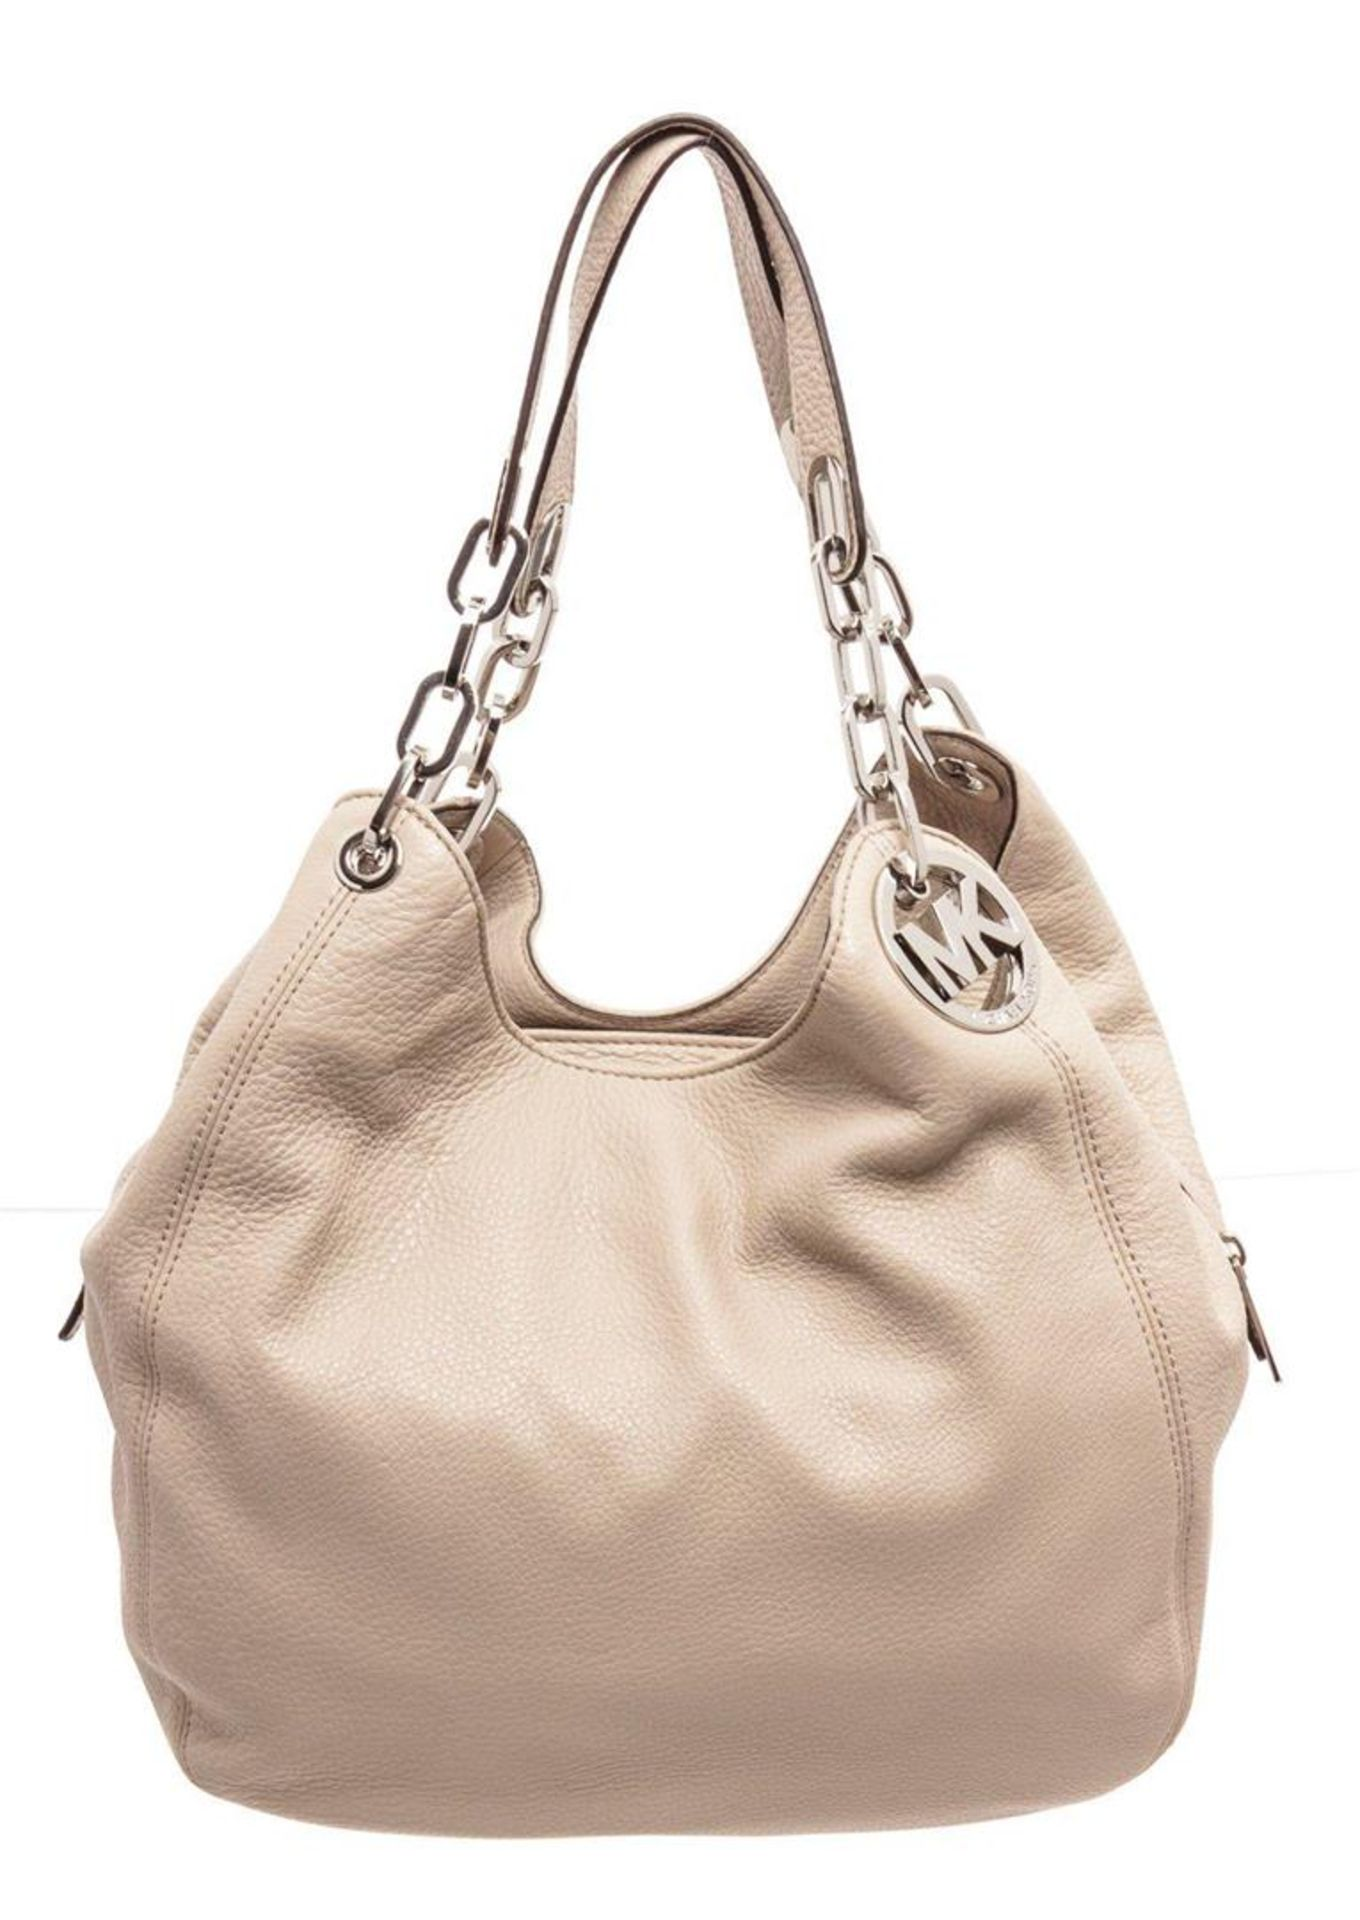 Michael Kors Beige Leather Fulton Hobo Bag